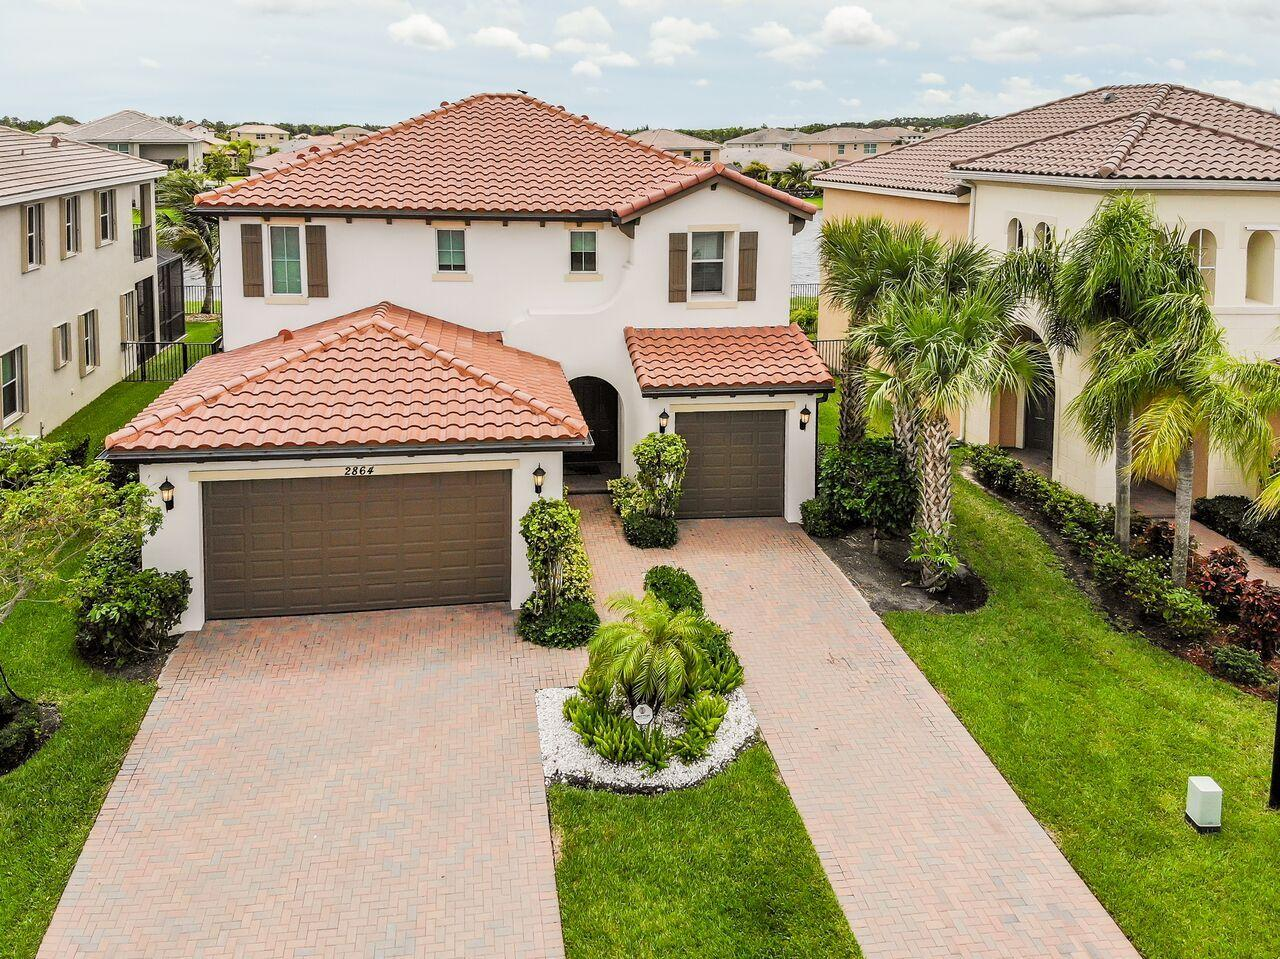 2864 Bellarosa Circle - Royal Palm Beach, Florida